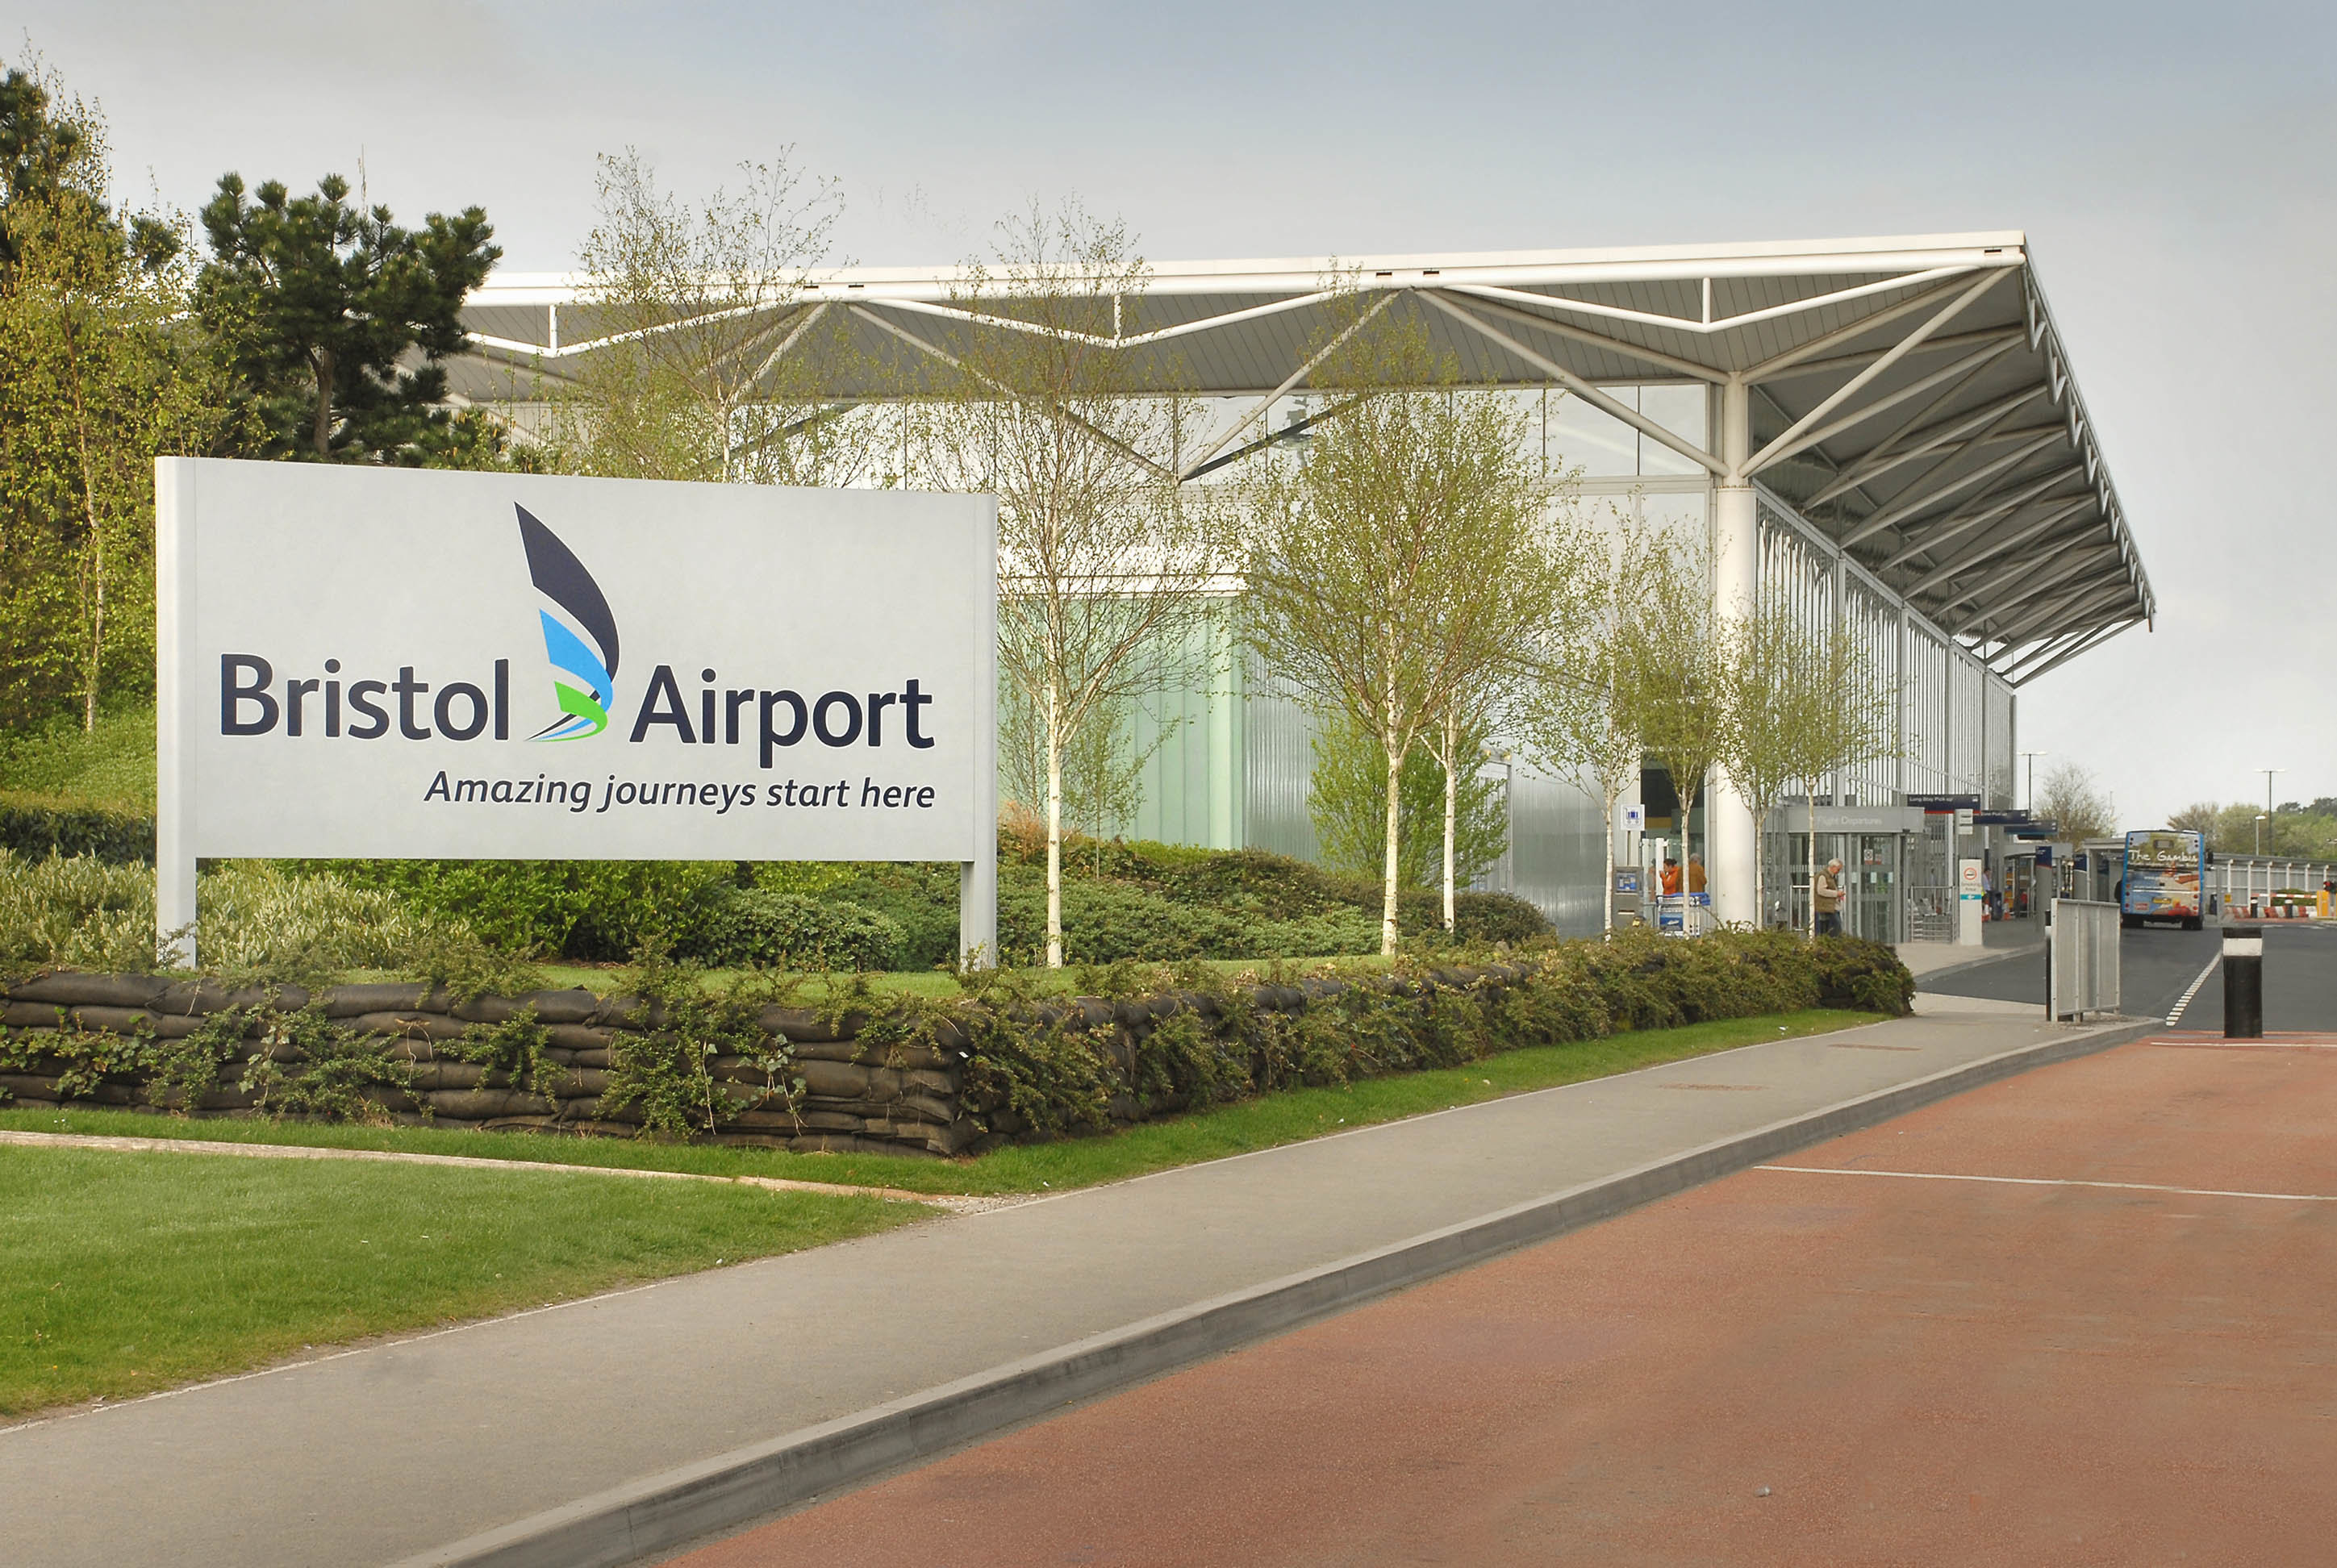 UK's Bristol Airport Powered by 100% Renewable Electricity